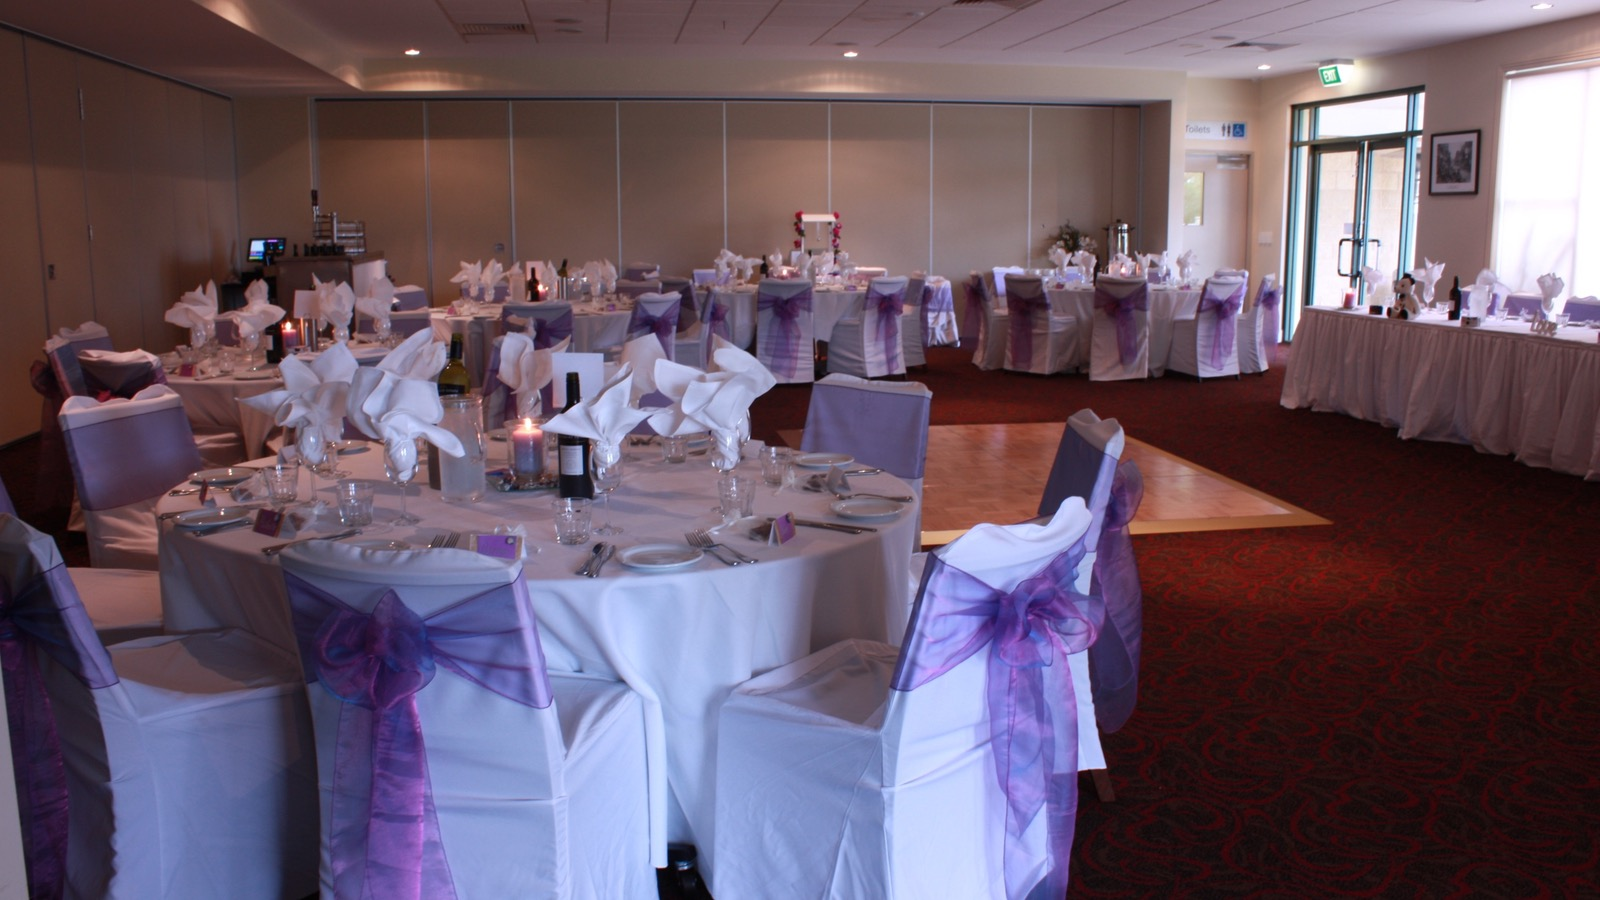 ANZAC Room - Ideal for weddings or any occasion